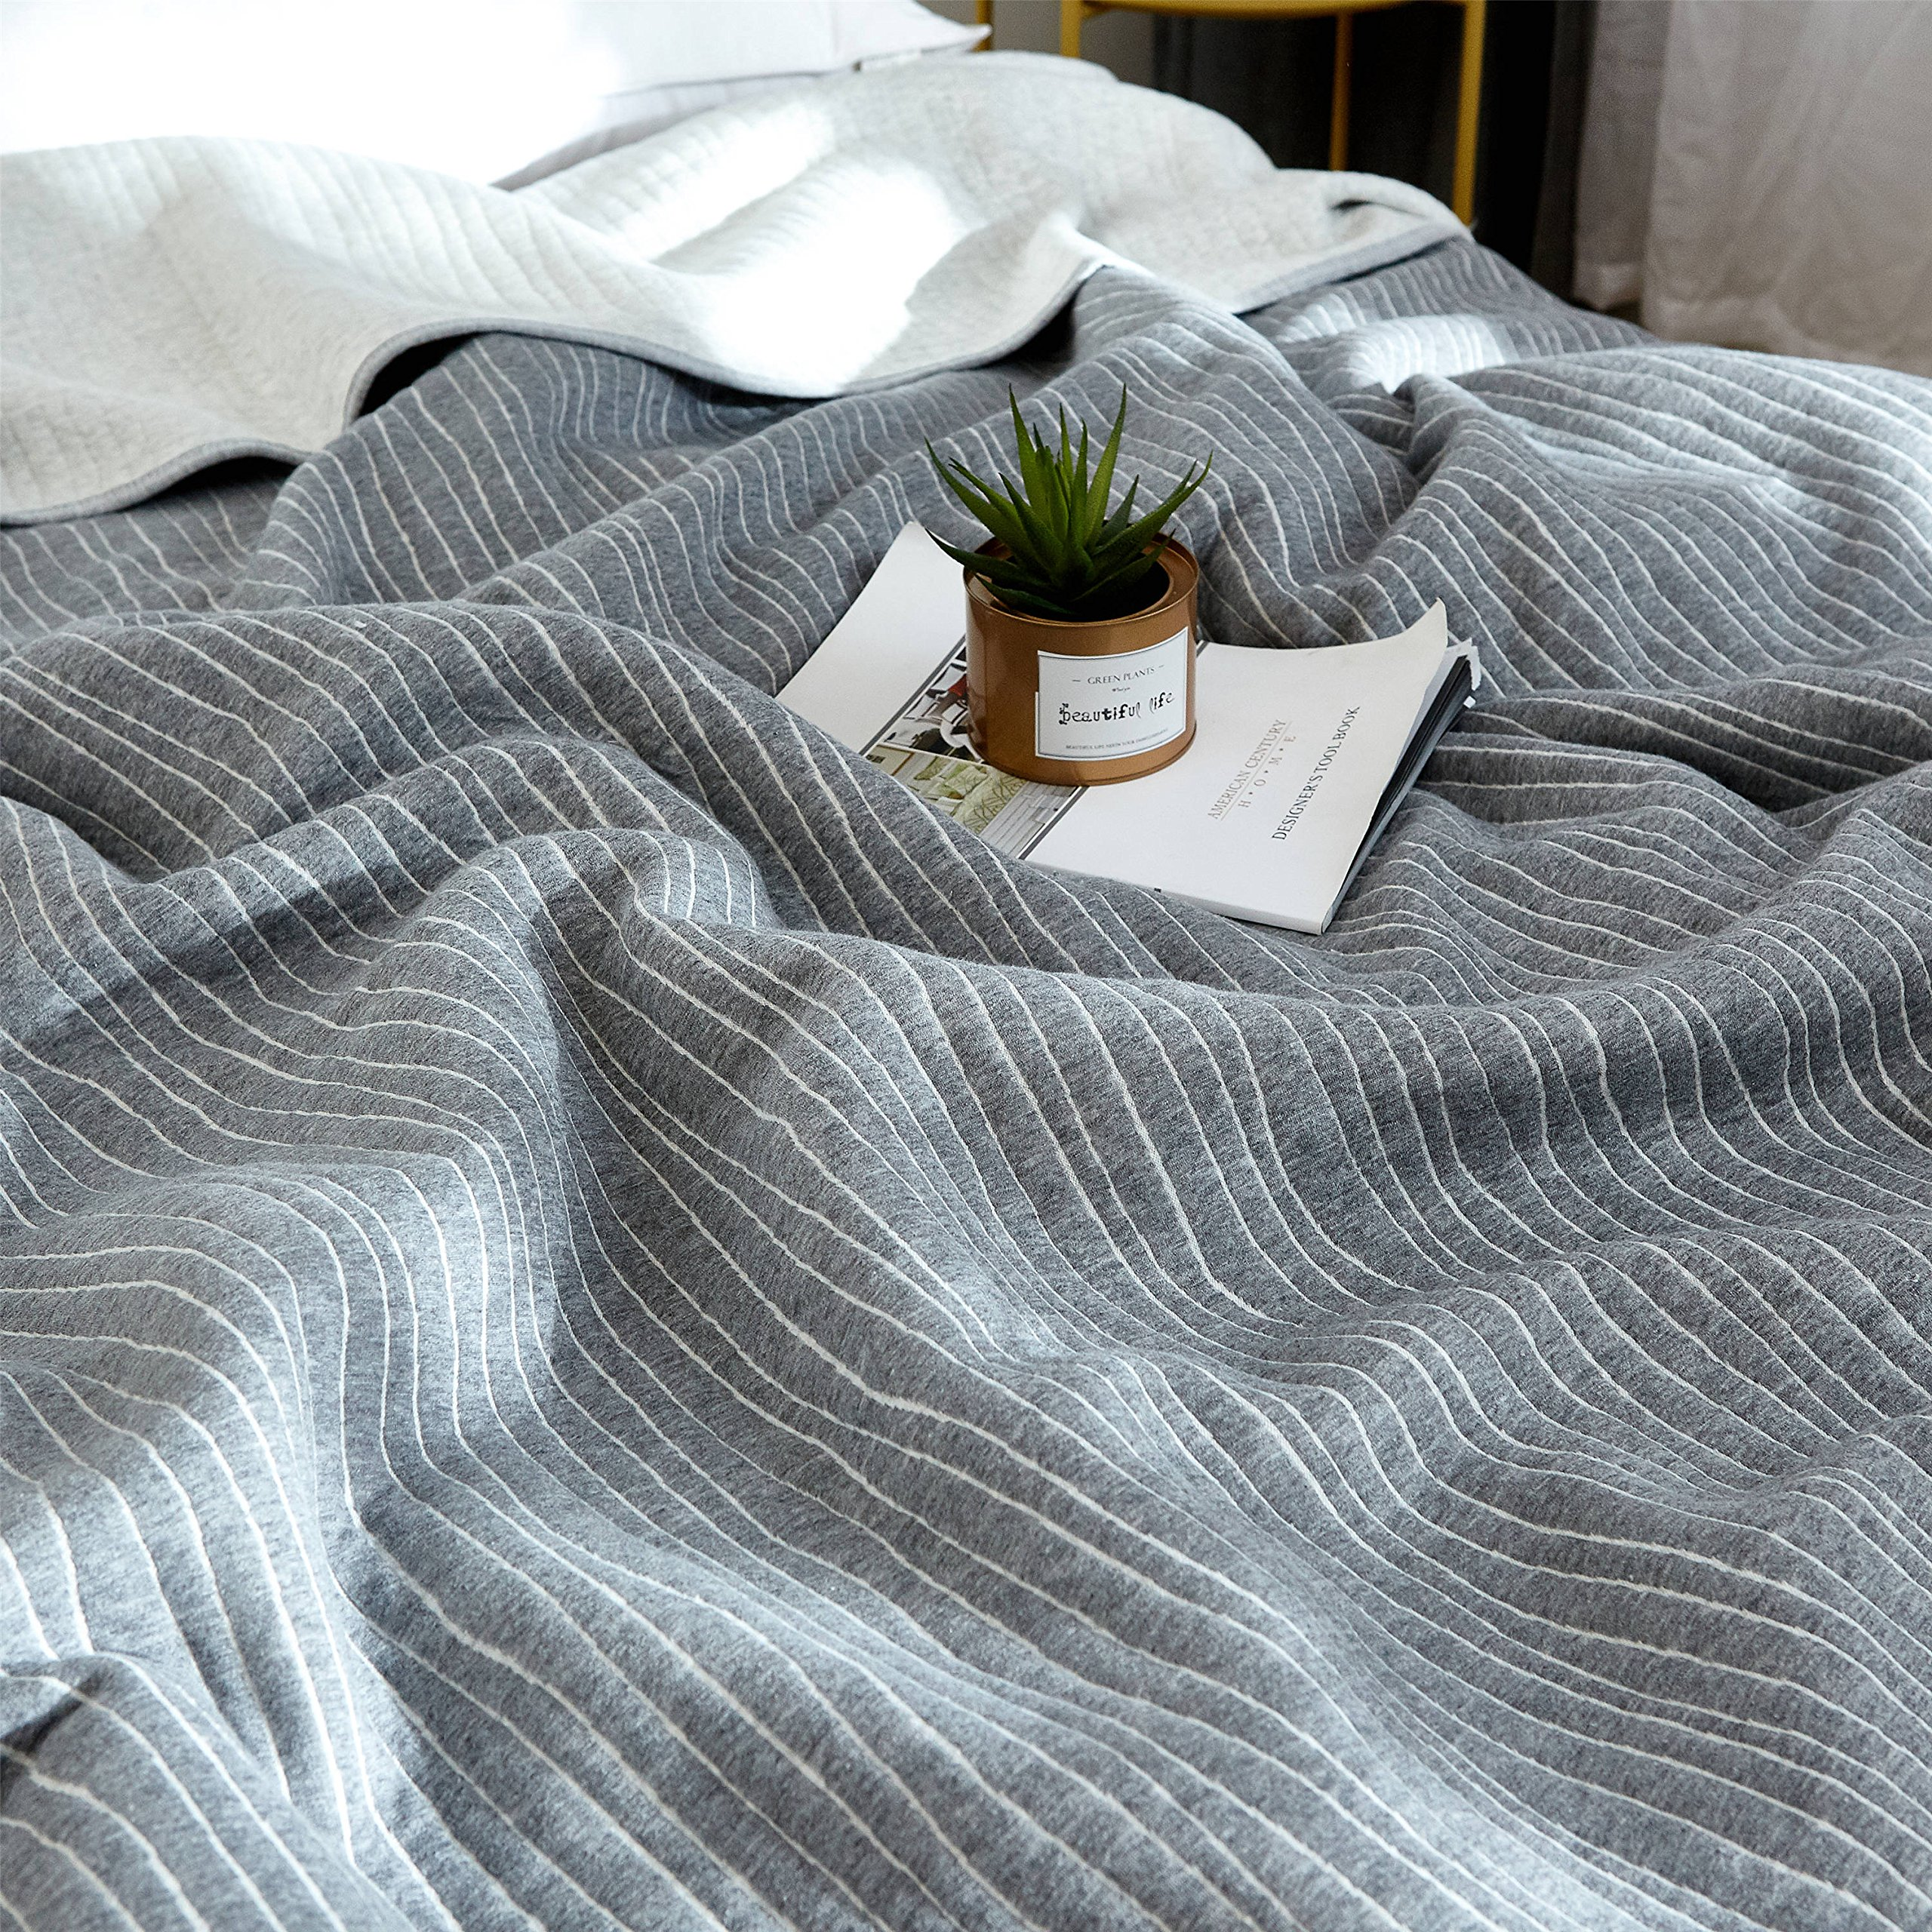 J-pinno Grey Stripes Jersey Cotton Cozy Quilt Reversible Throw Blanket Bedspread Bedding Coverlet for Kids Teen Boys Bed Gift (2, F/Q 78'' X 90'') by J-pinno (Image #2)